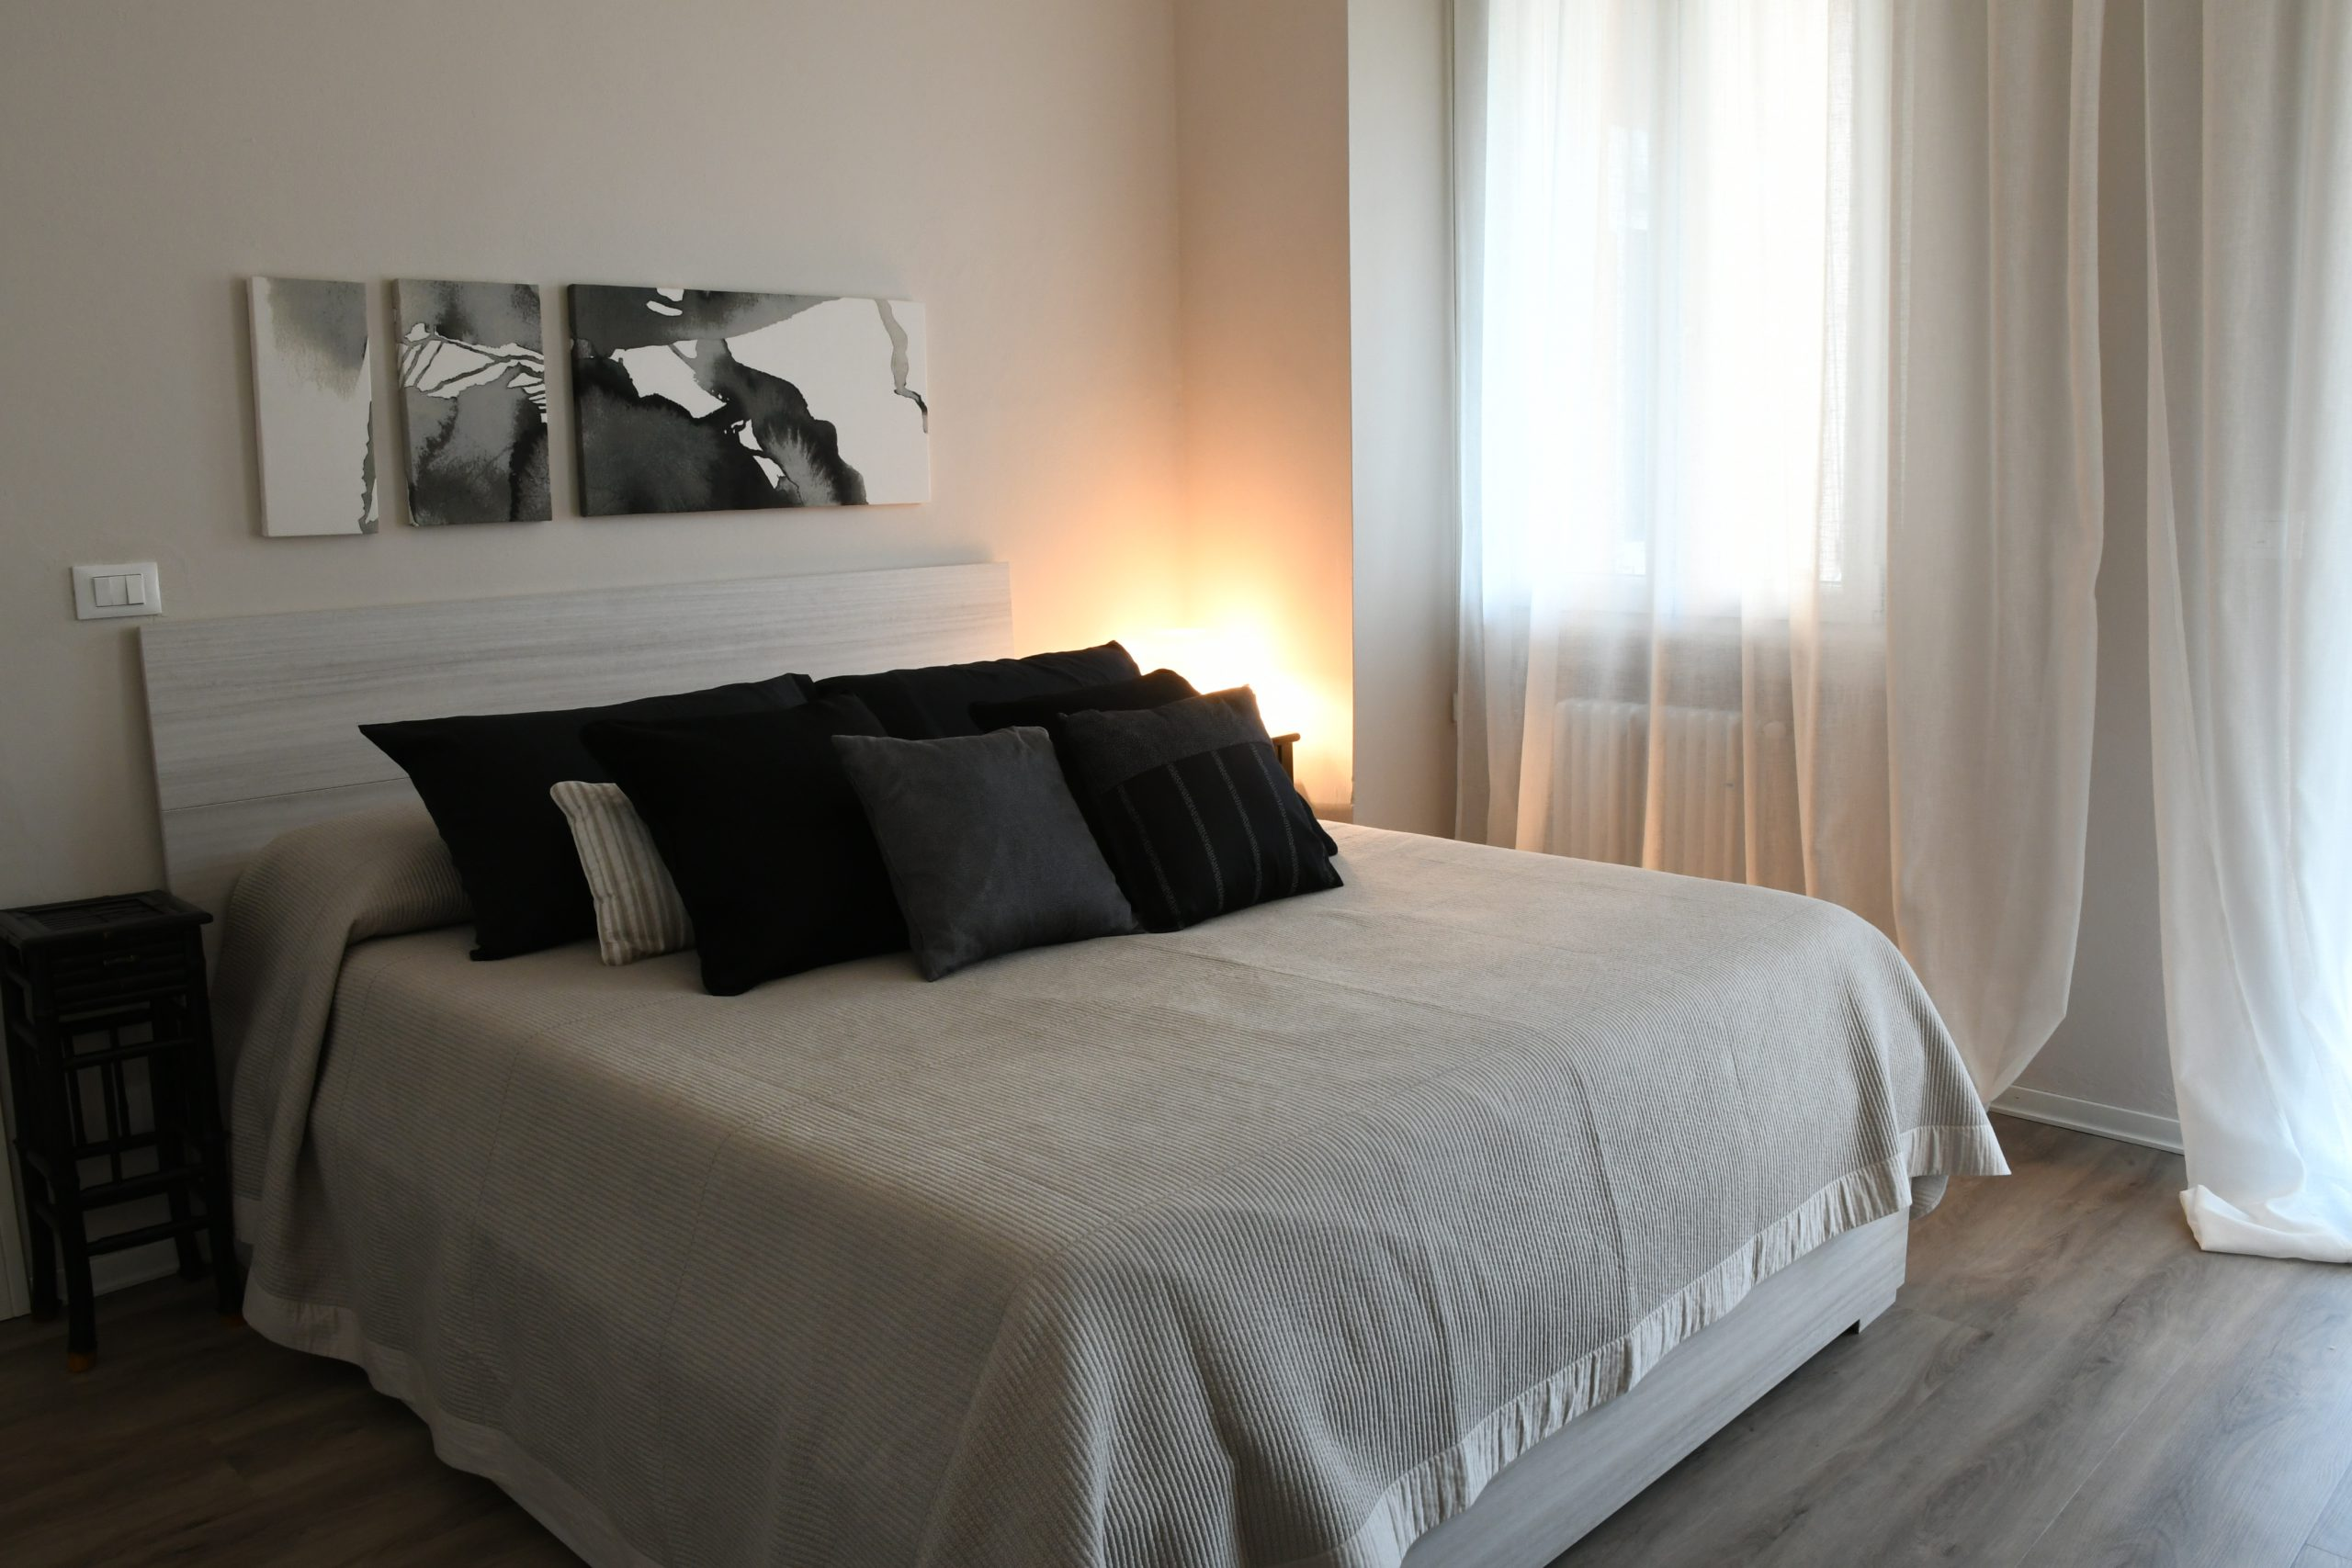 Rossanella's Place in Lake Garda - Bedroom King size bed